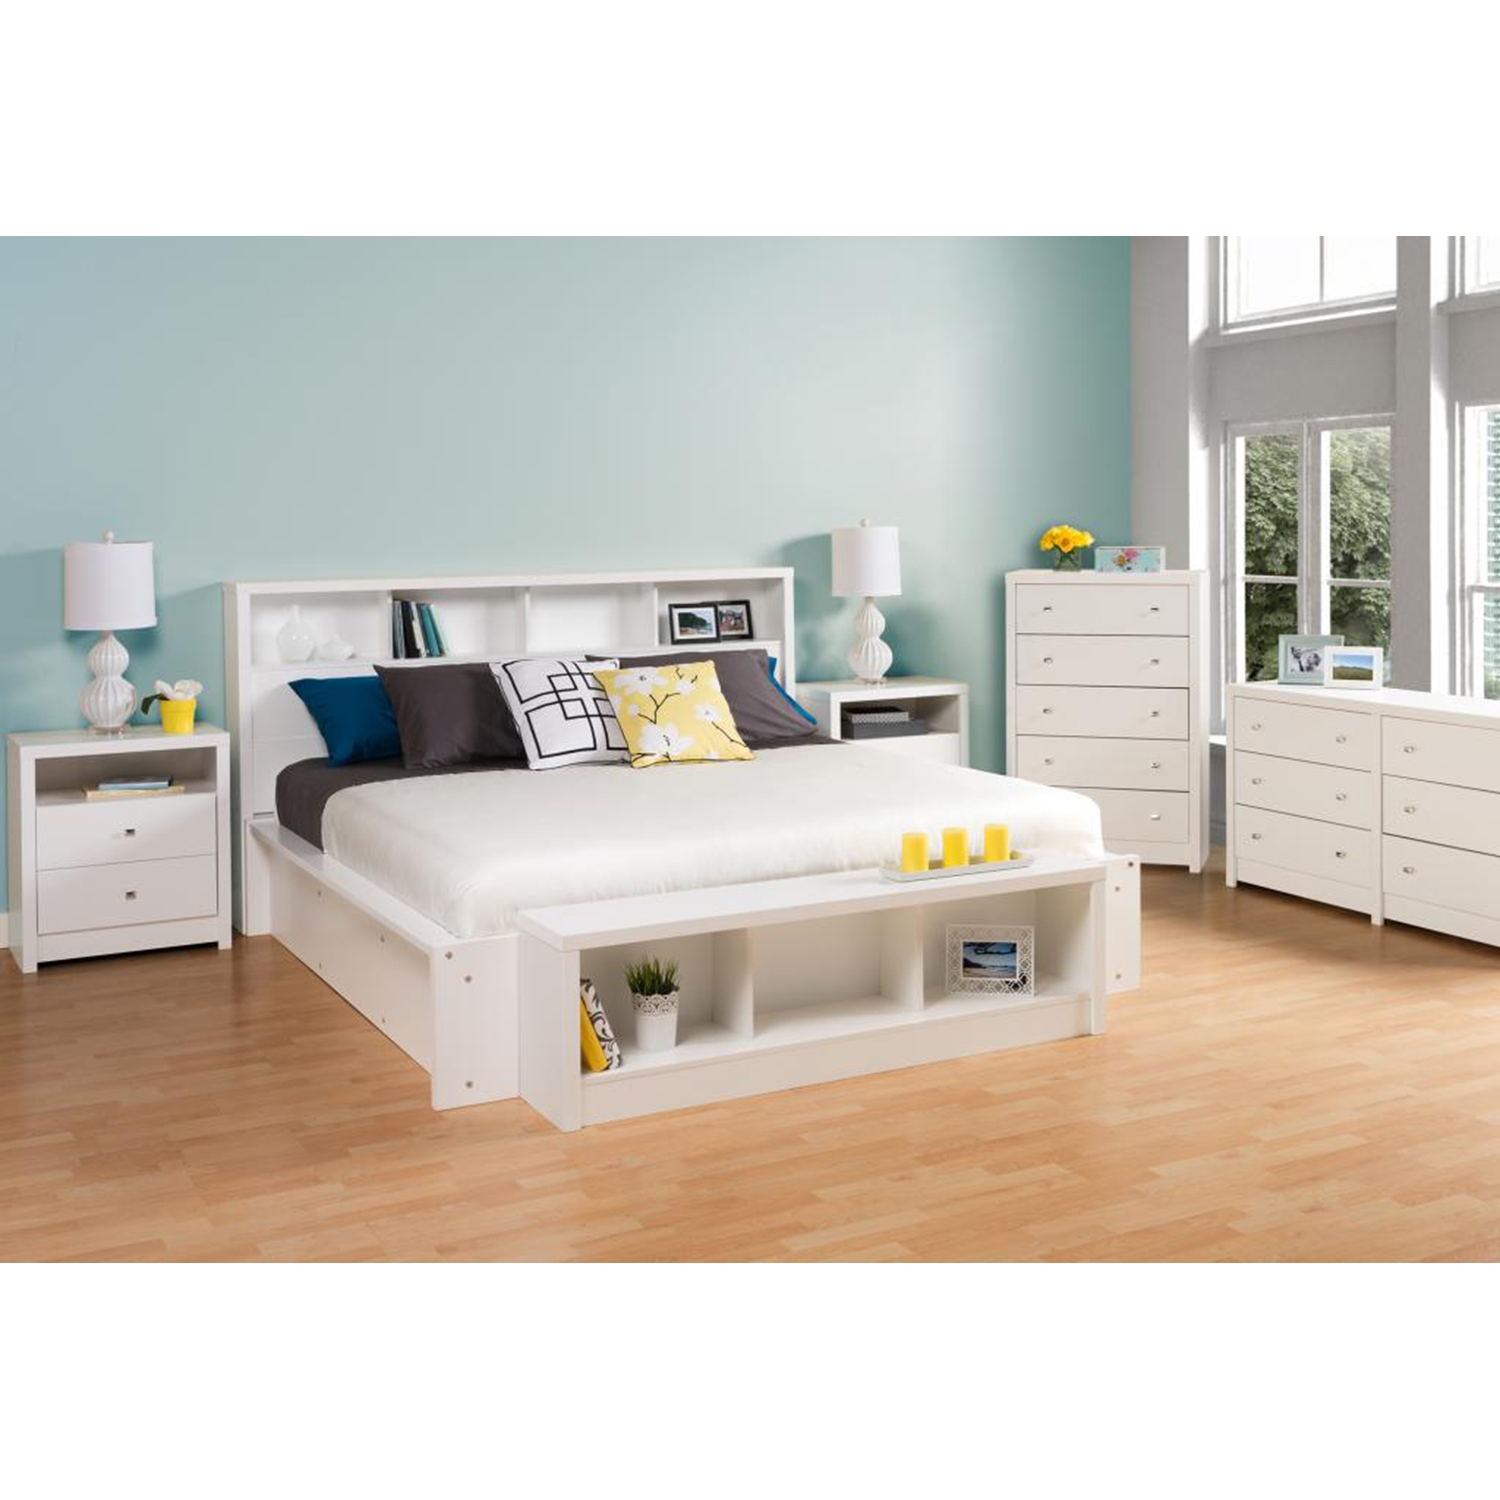 Calla 6-Drawer Dresser - Pure White - PRE-WDBR-0560-1